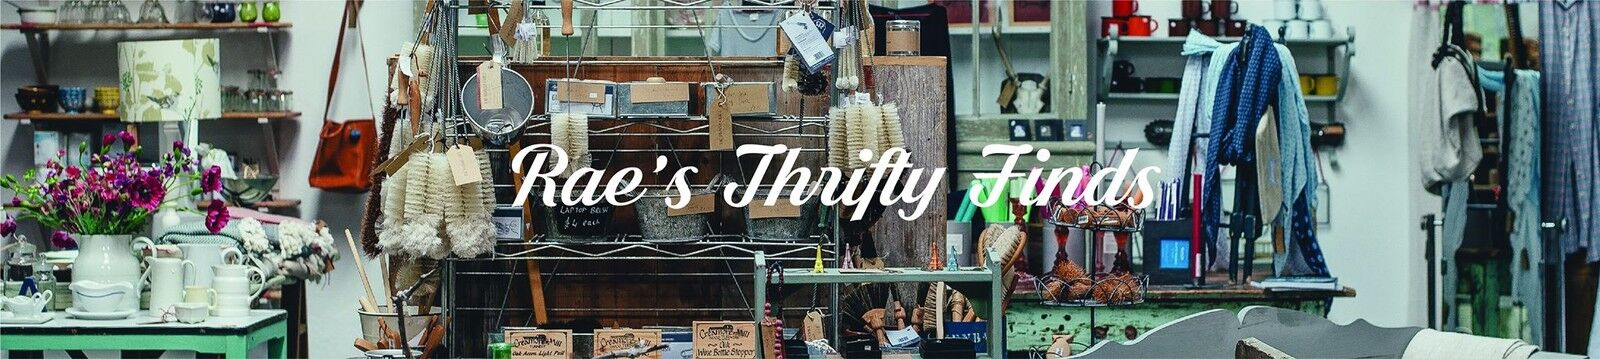 RAE'S THRIFTY FINDS